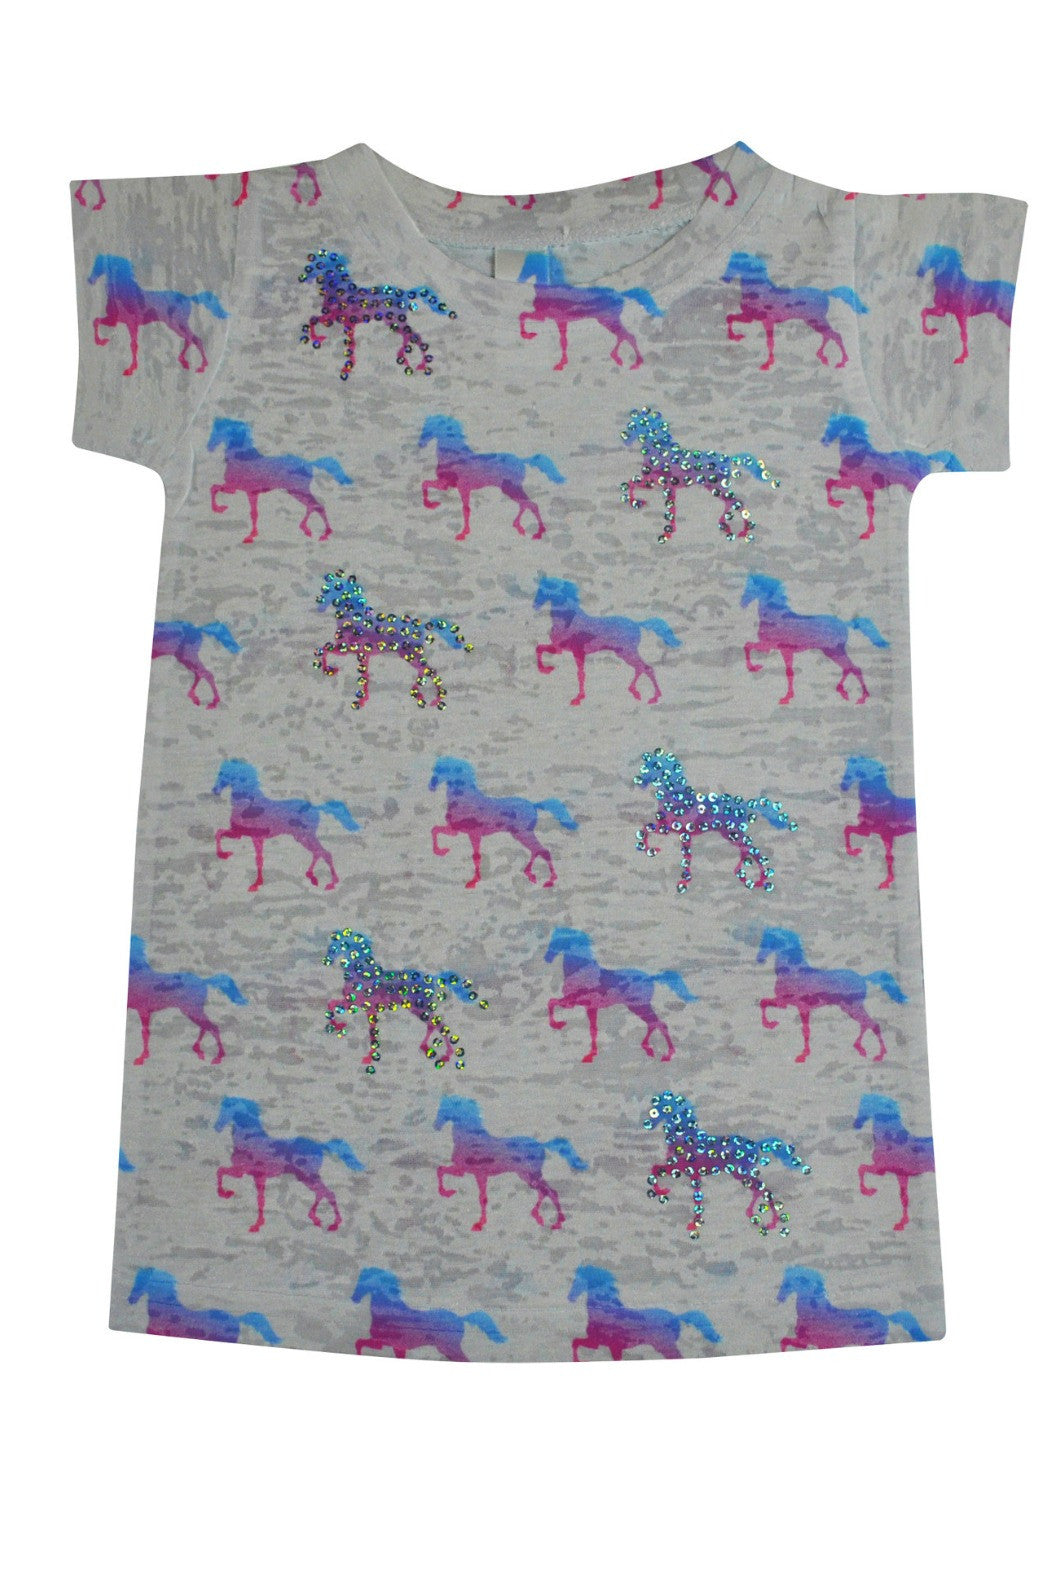 Ponies Long Sleeve Tee - R+D Hipster Emporium | Womens & Mens Clothing